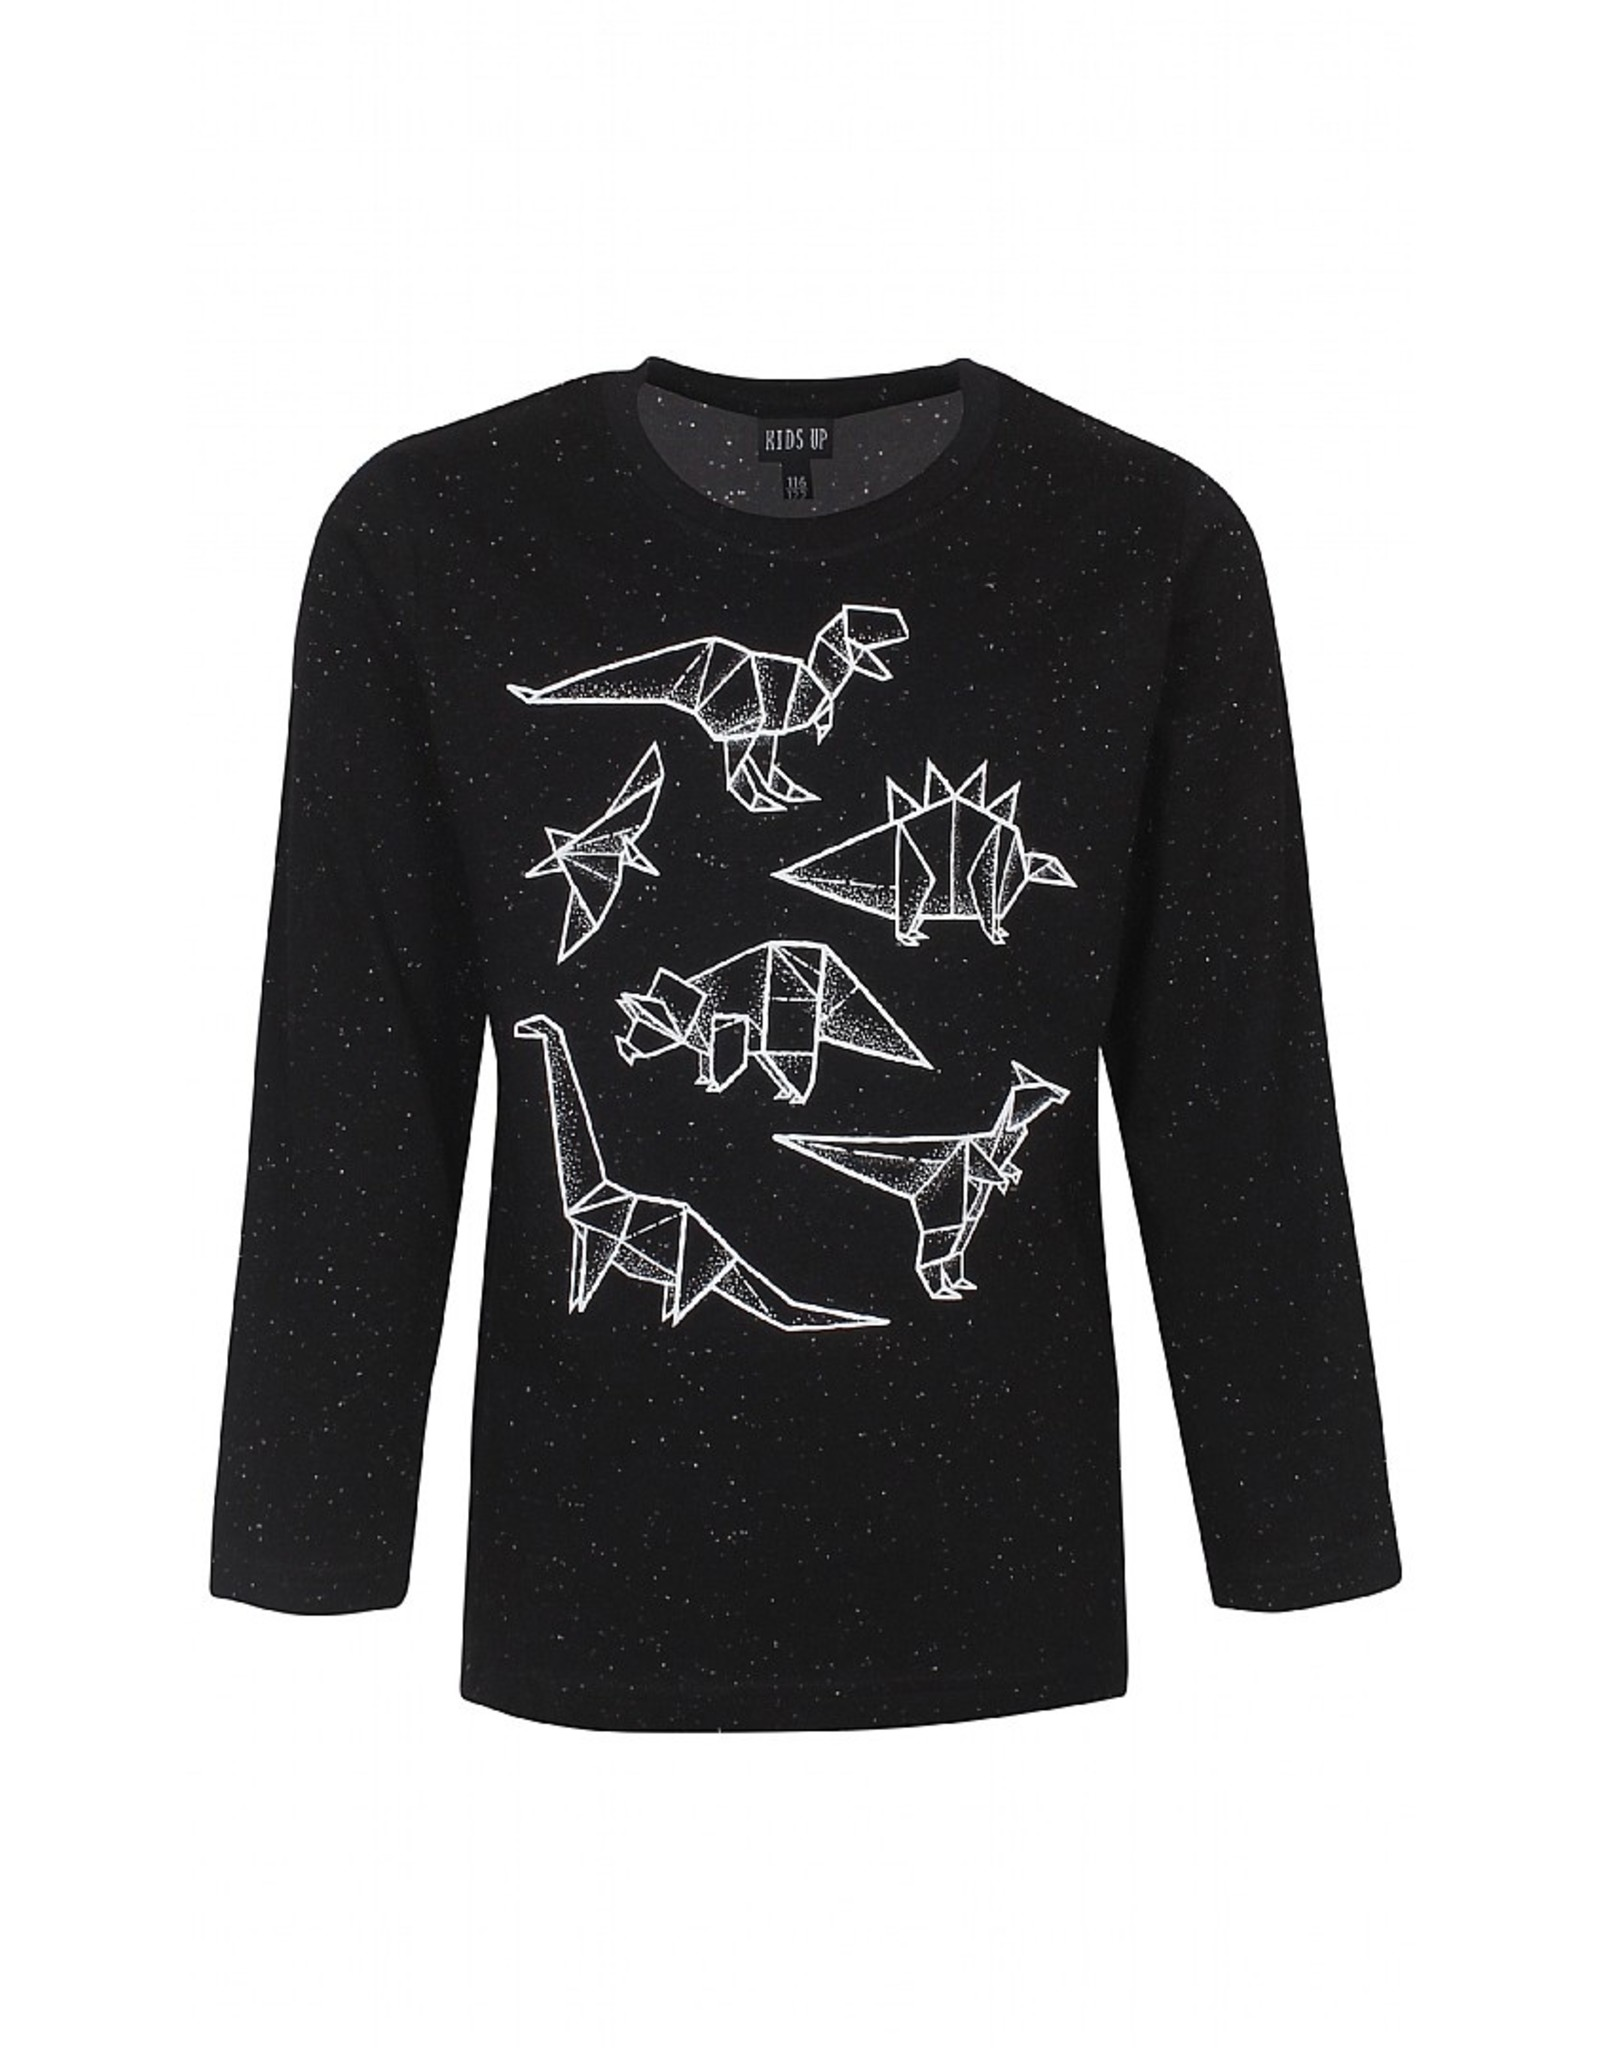 KIDS UP Kids Up T-shirt Longsleeve Dino